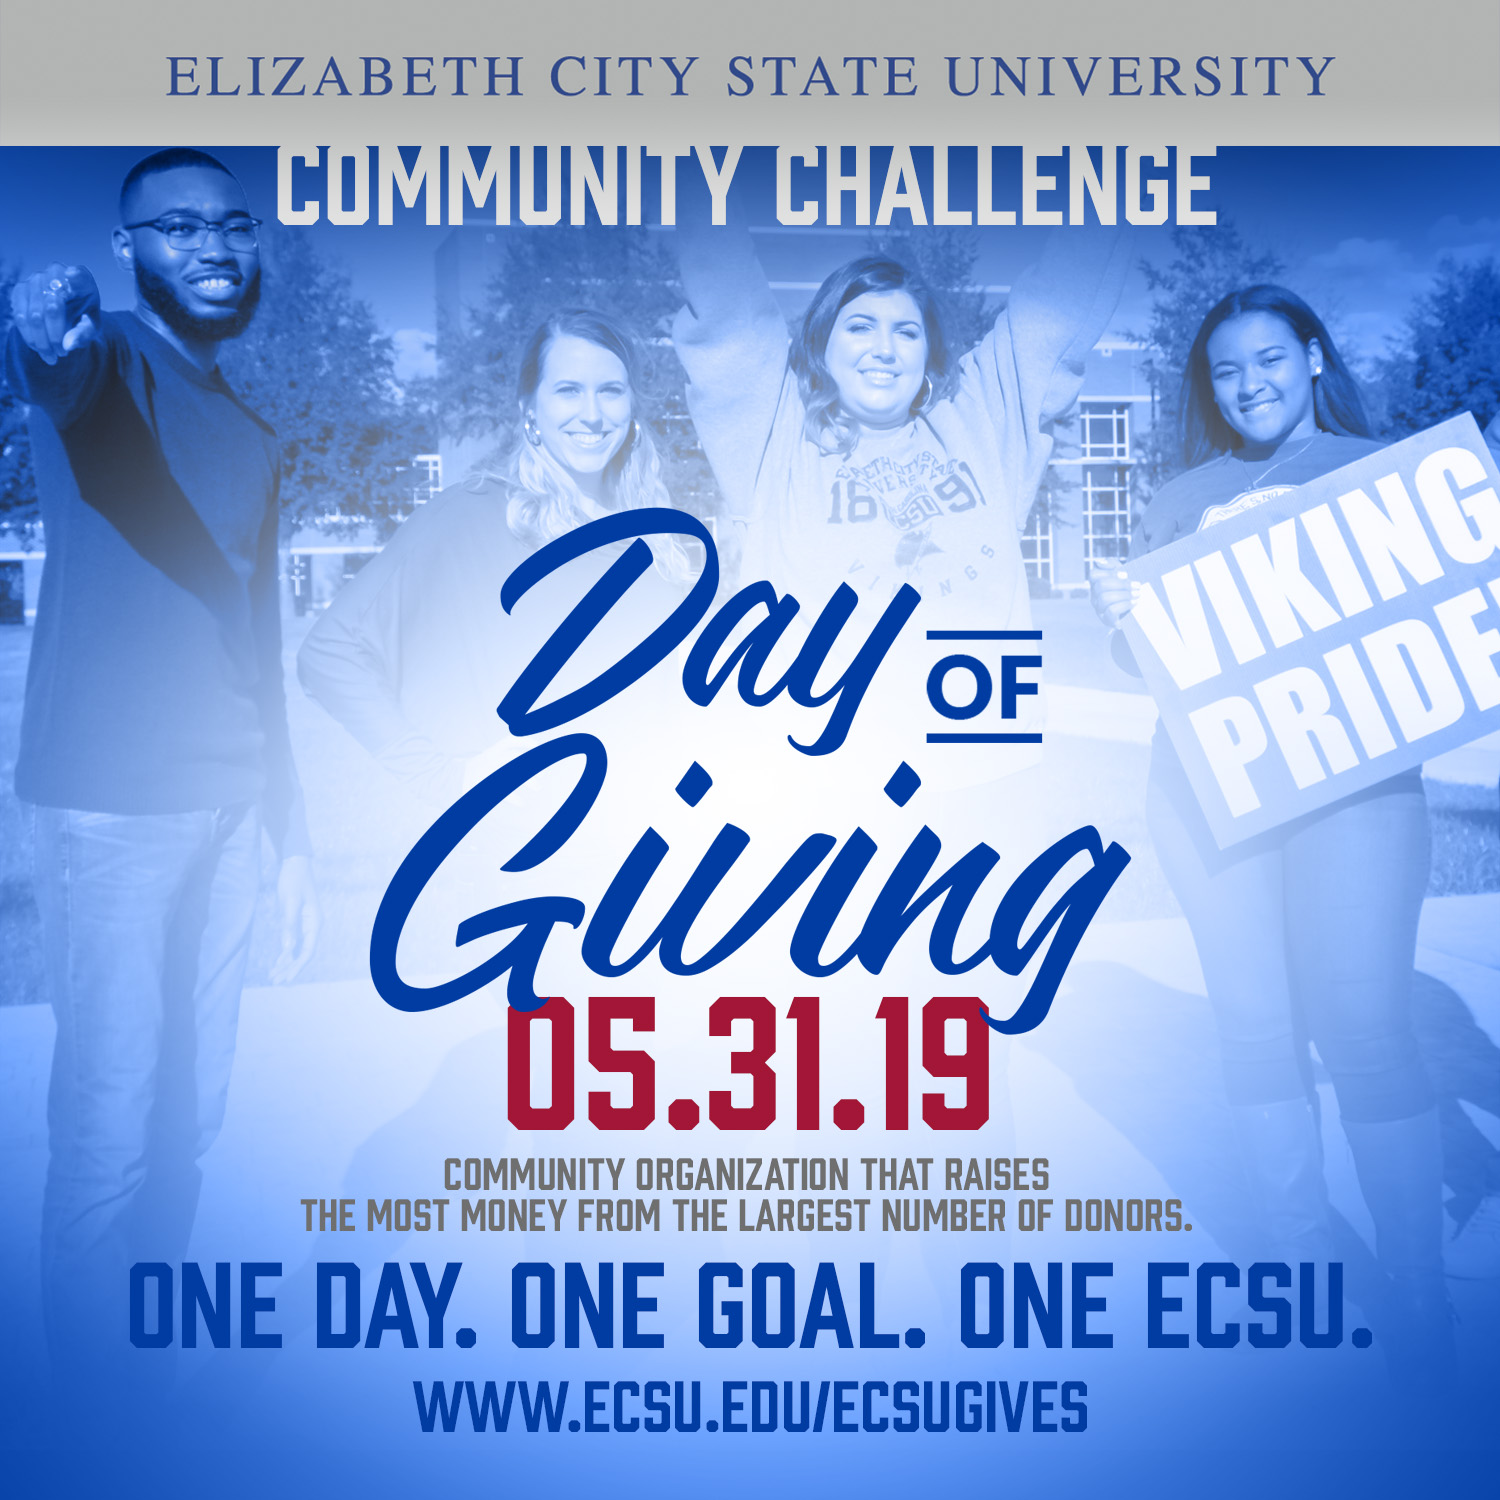 Ecsu day of giving 2019 sm community challenge